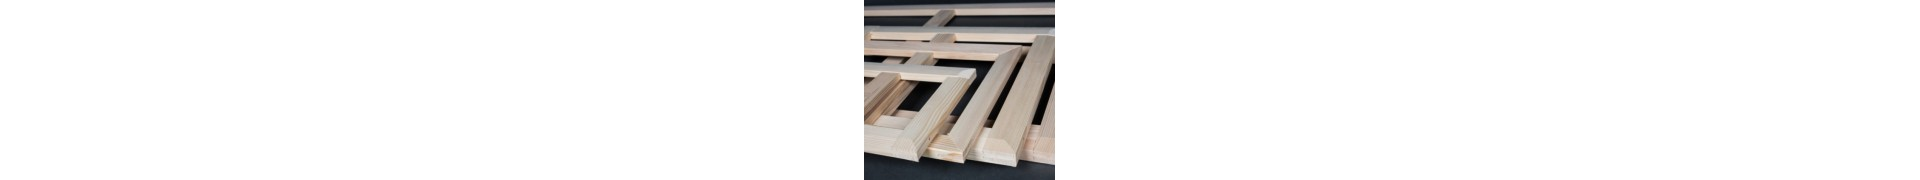 CHASSIS A CLES N. 10 (NU) MARINE